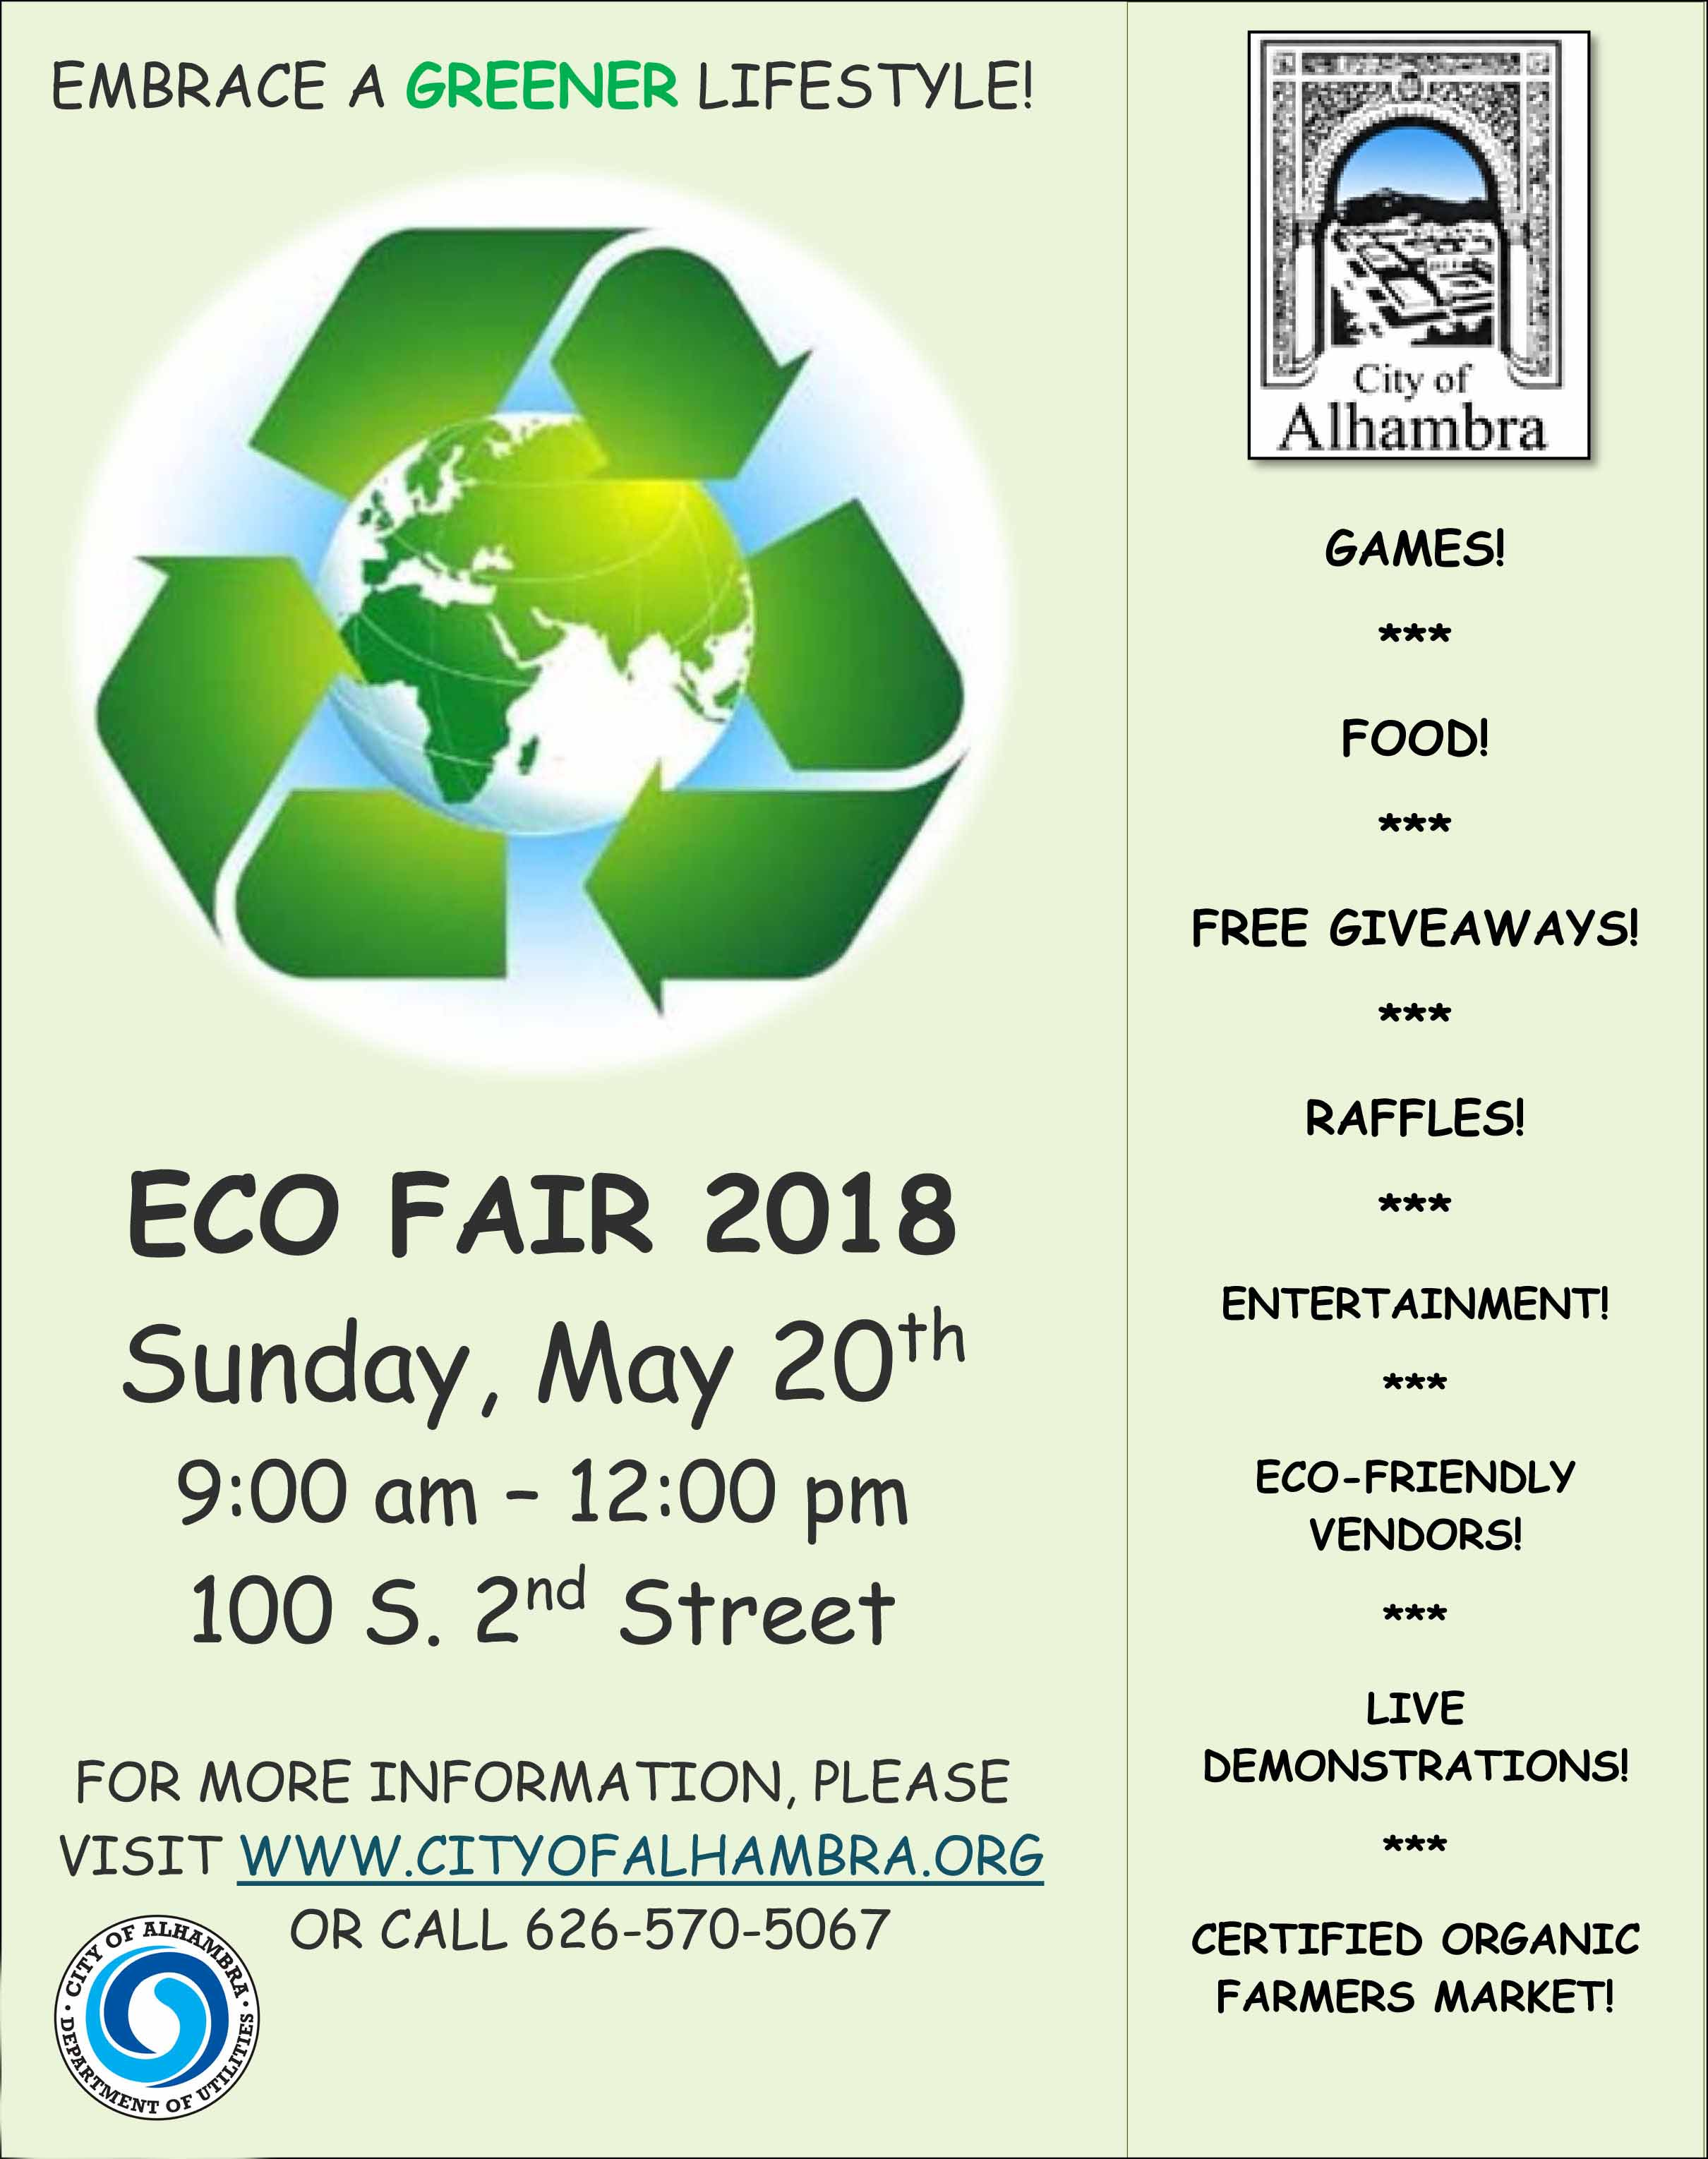 Eco Fair 2018, Sunday, May 10, 2018 flyer image